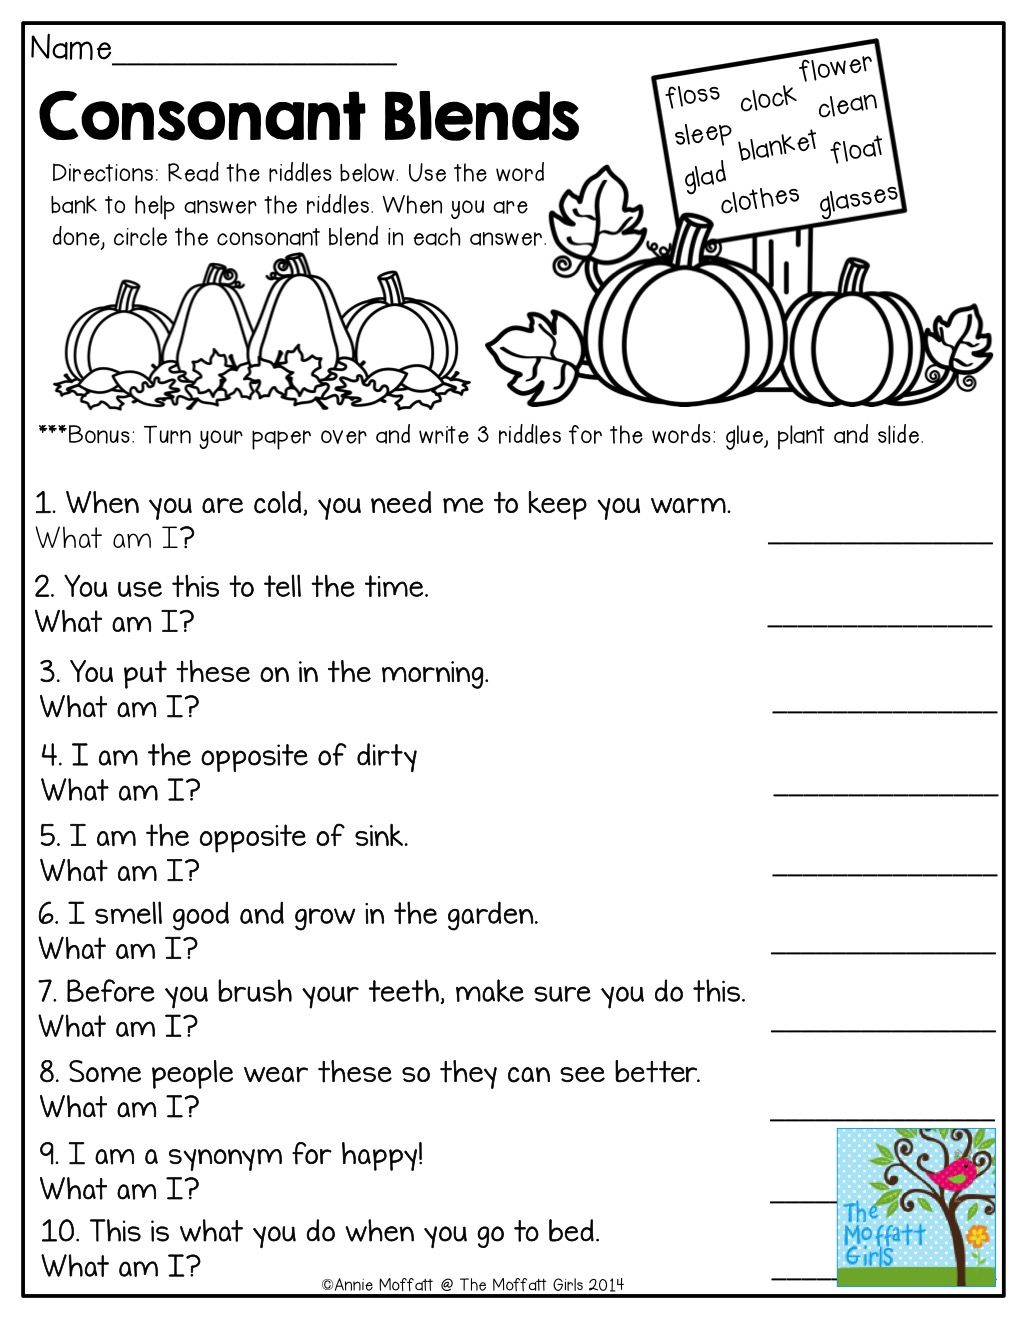 Consonant Blends Worksheet For Grade 2